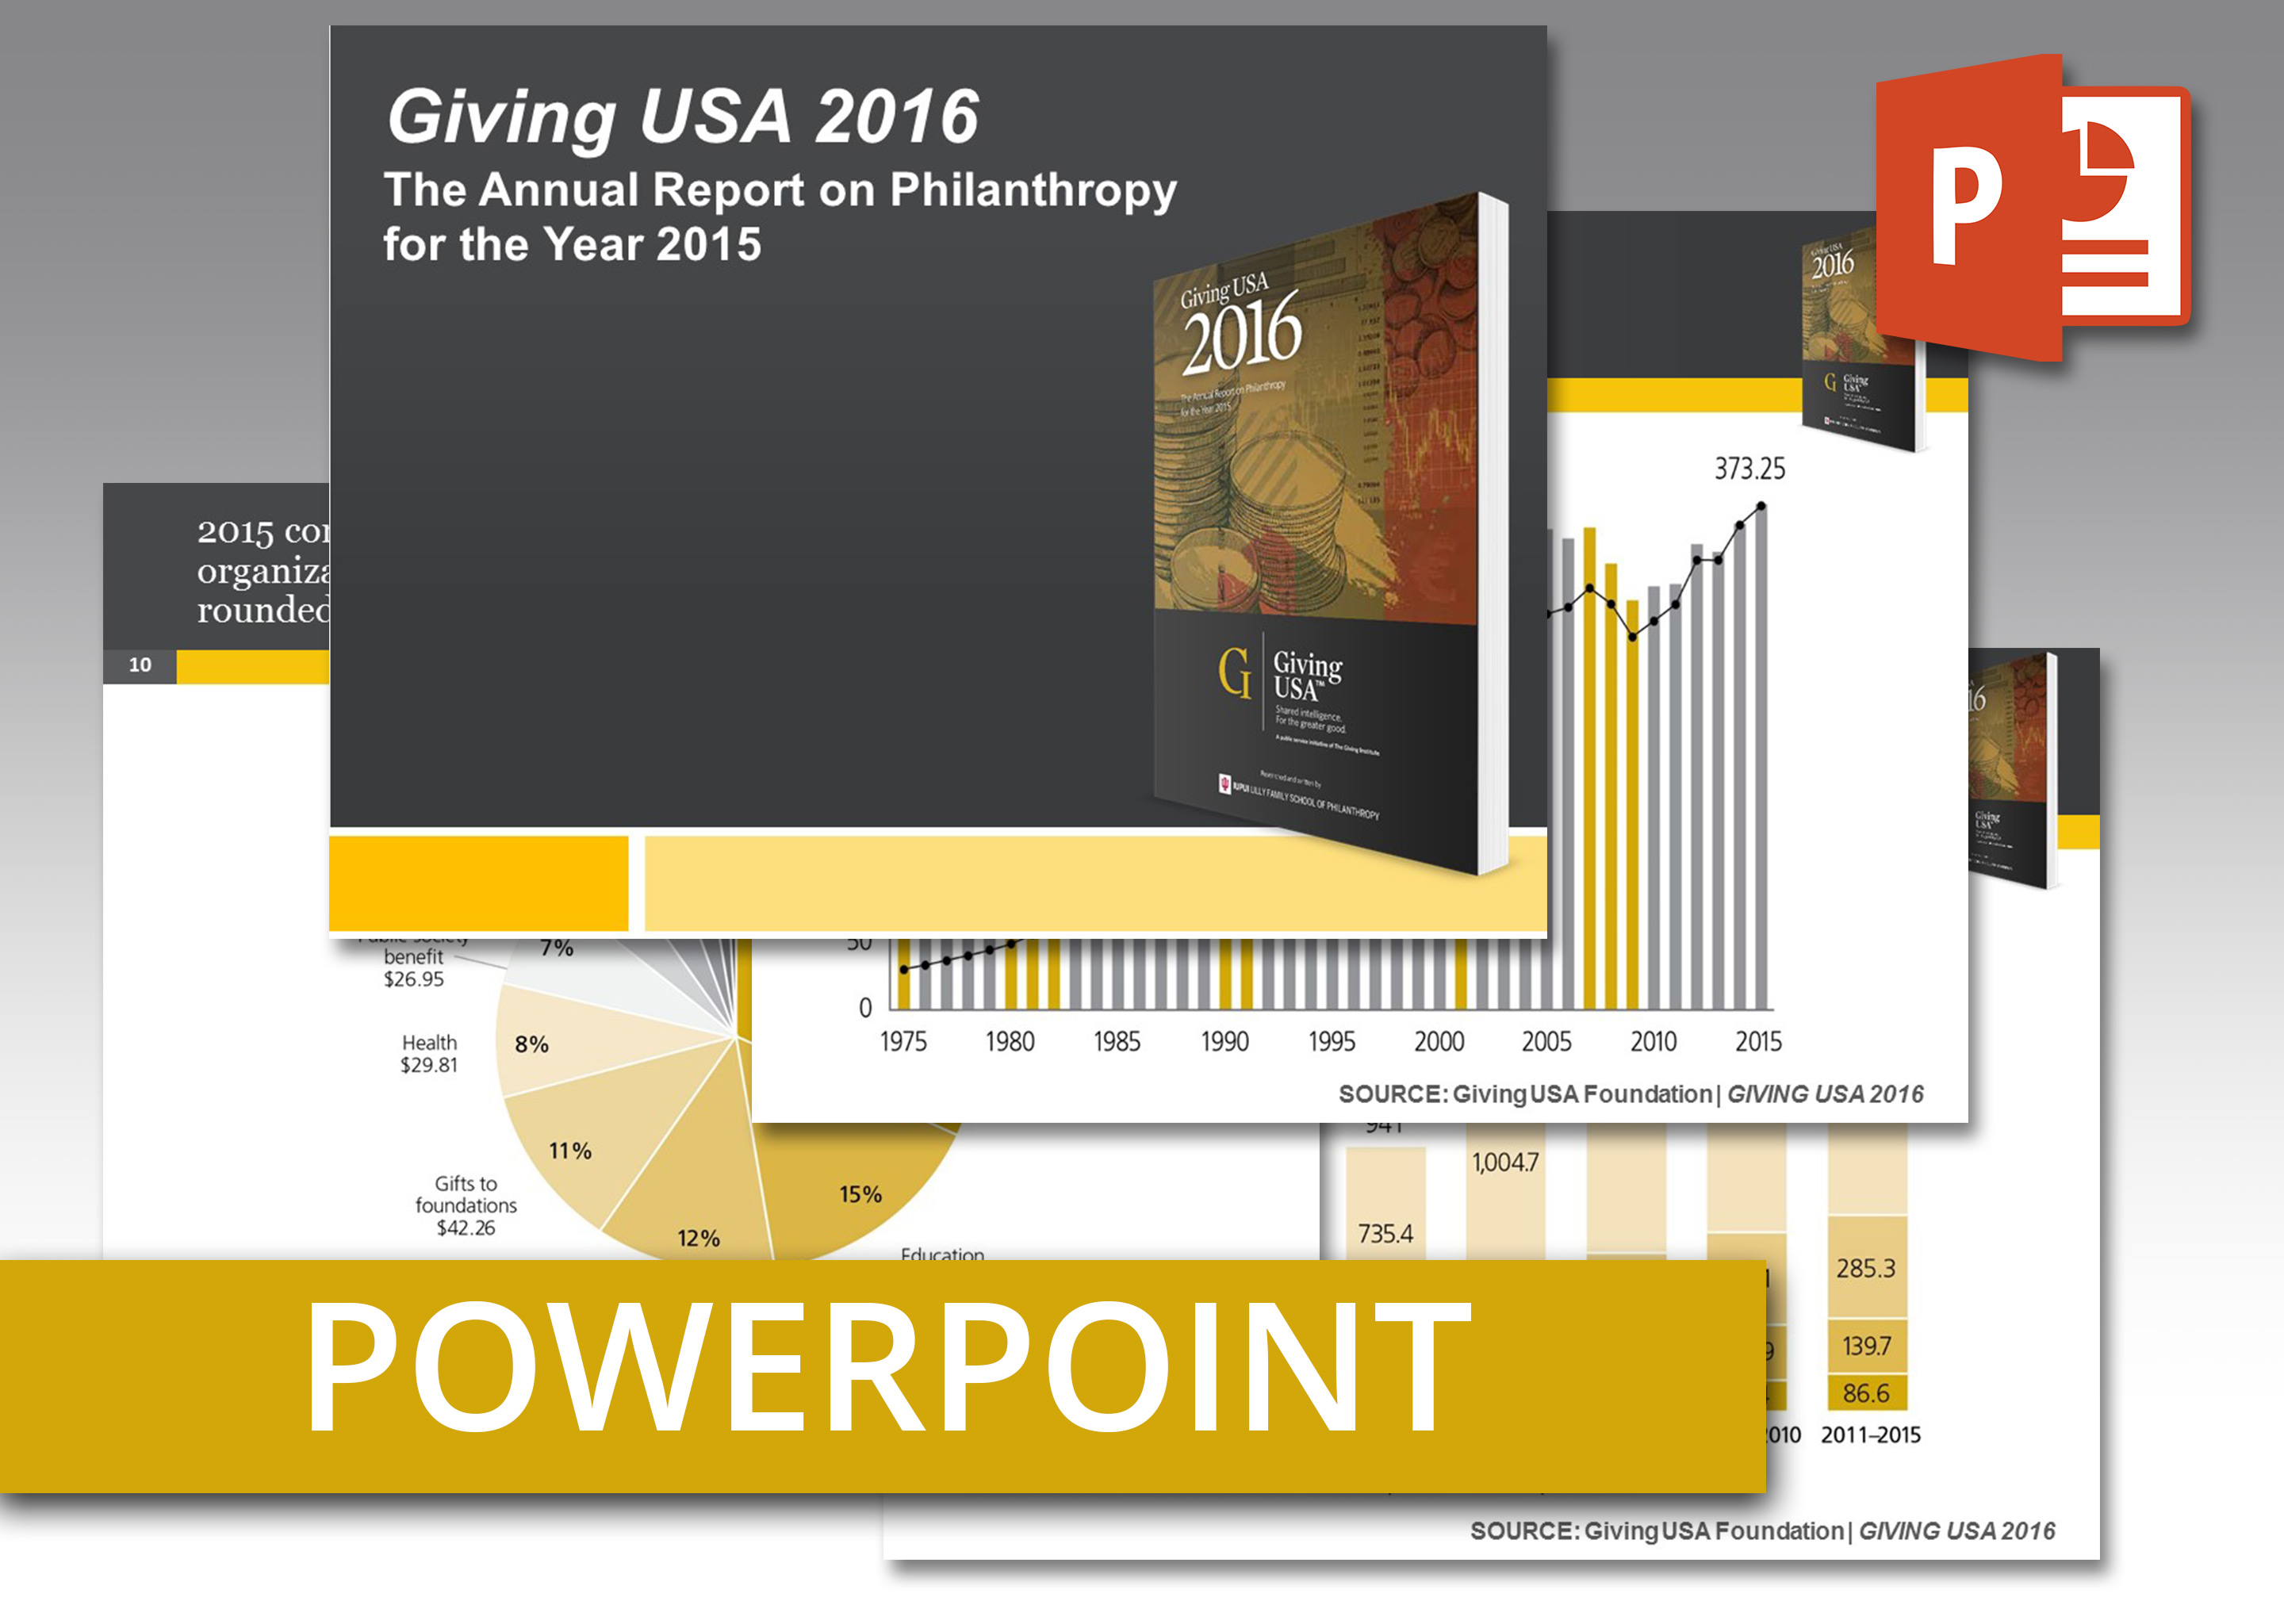 Coolmathgamesus  Picturesque Giving Usa  Powerpoint An Easytouse Presentation Of Report  With Magnificent Giving Usa  Powerpoint An Easytouse Presentation Of Report Findings Including Talking Points With Amazing Powerpoint  Theme Also Powerpoint On Compare And Contrast In Addition Free Ms Powerpoint  Download And Ruminant Digestive System Powerpoint As Well As Sda Church Hymnal Powerpoint Additionally Download Ms Powerpoint  Free Full Version From Givingusaorg With Coolmathgamesus  Magnificent Giving Usa  Powerpoint An Easytouse Presentation Of Report  With Amazing Giving Usa  Powerpoint An Easytouse Presentation Of Report Findings Including Talking Points And Picturesque Powerpoint  Theme Also Powerpoint On Compare And Contrast In Addition Free Ms Powerpoint  Download From Givingusaorg